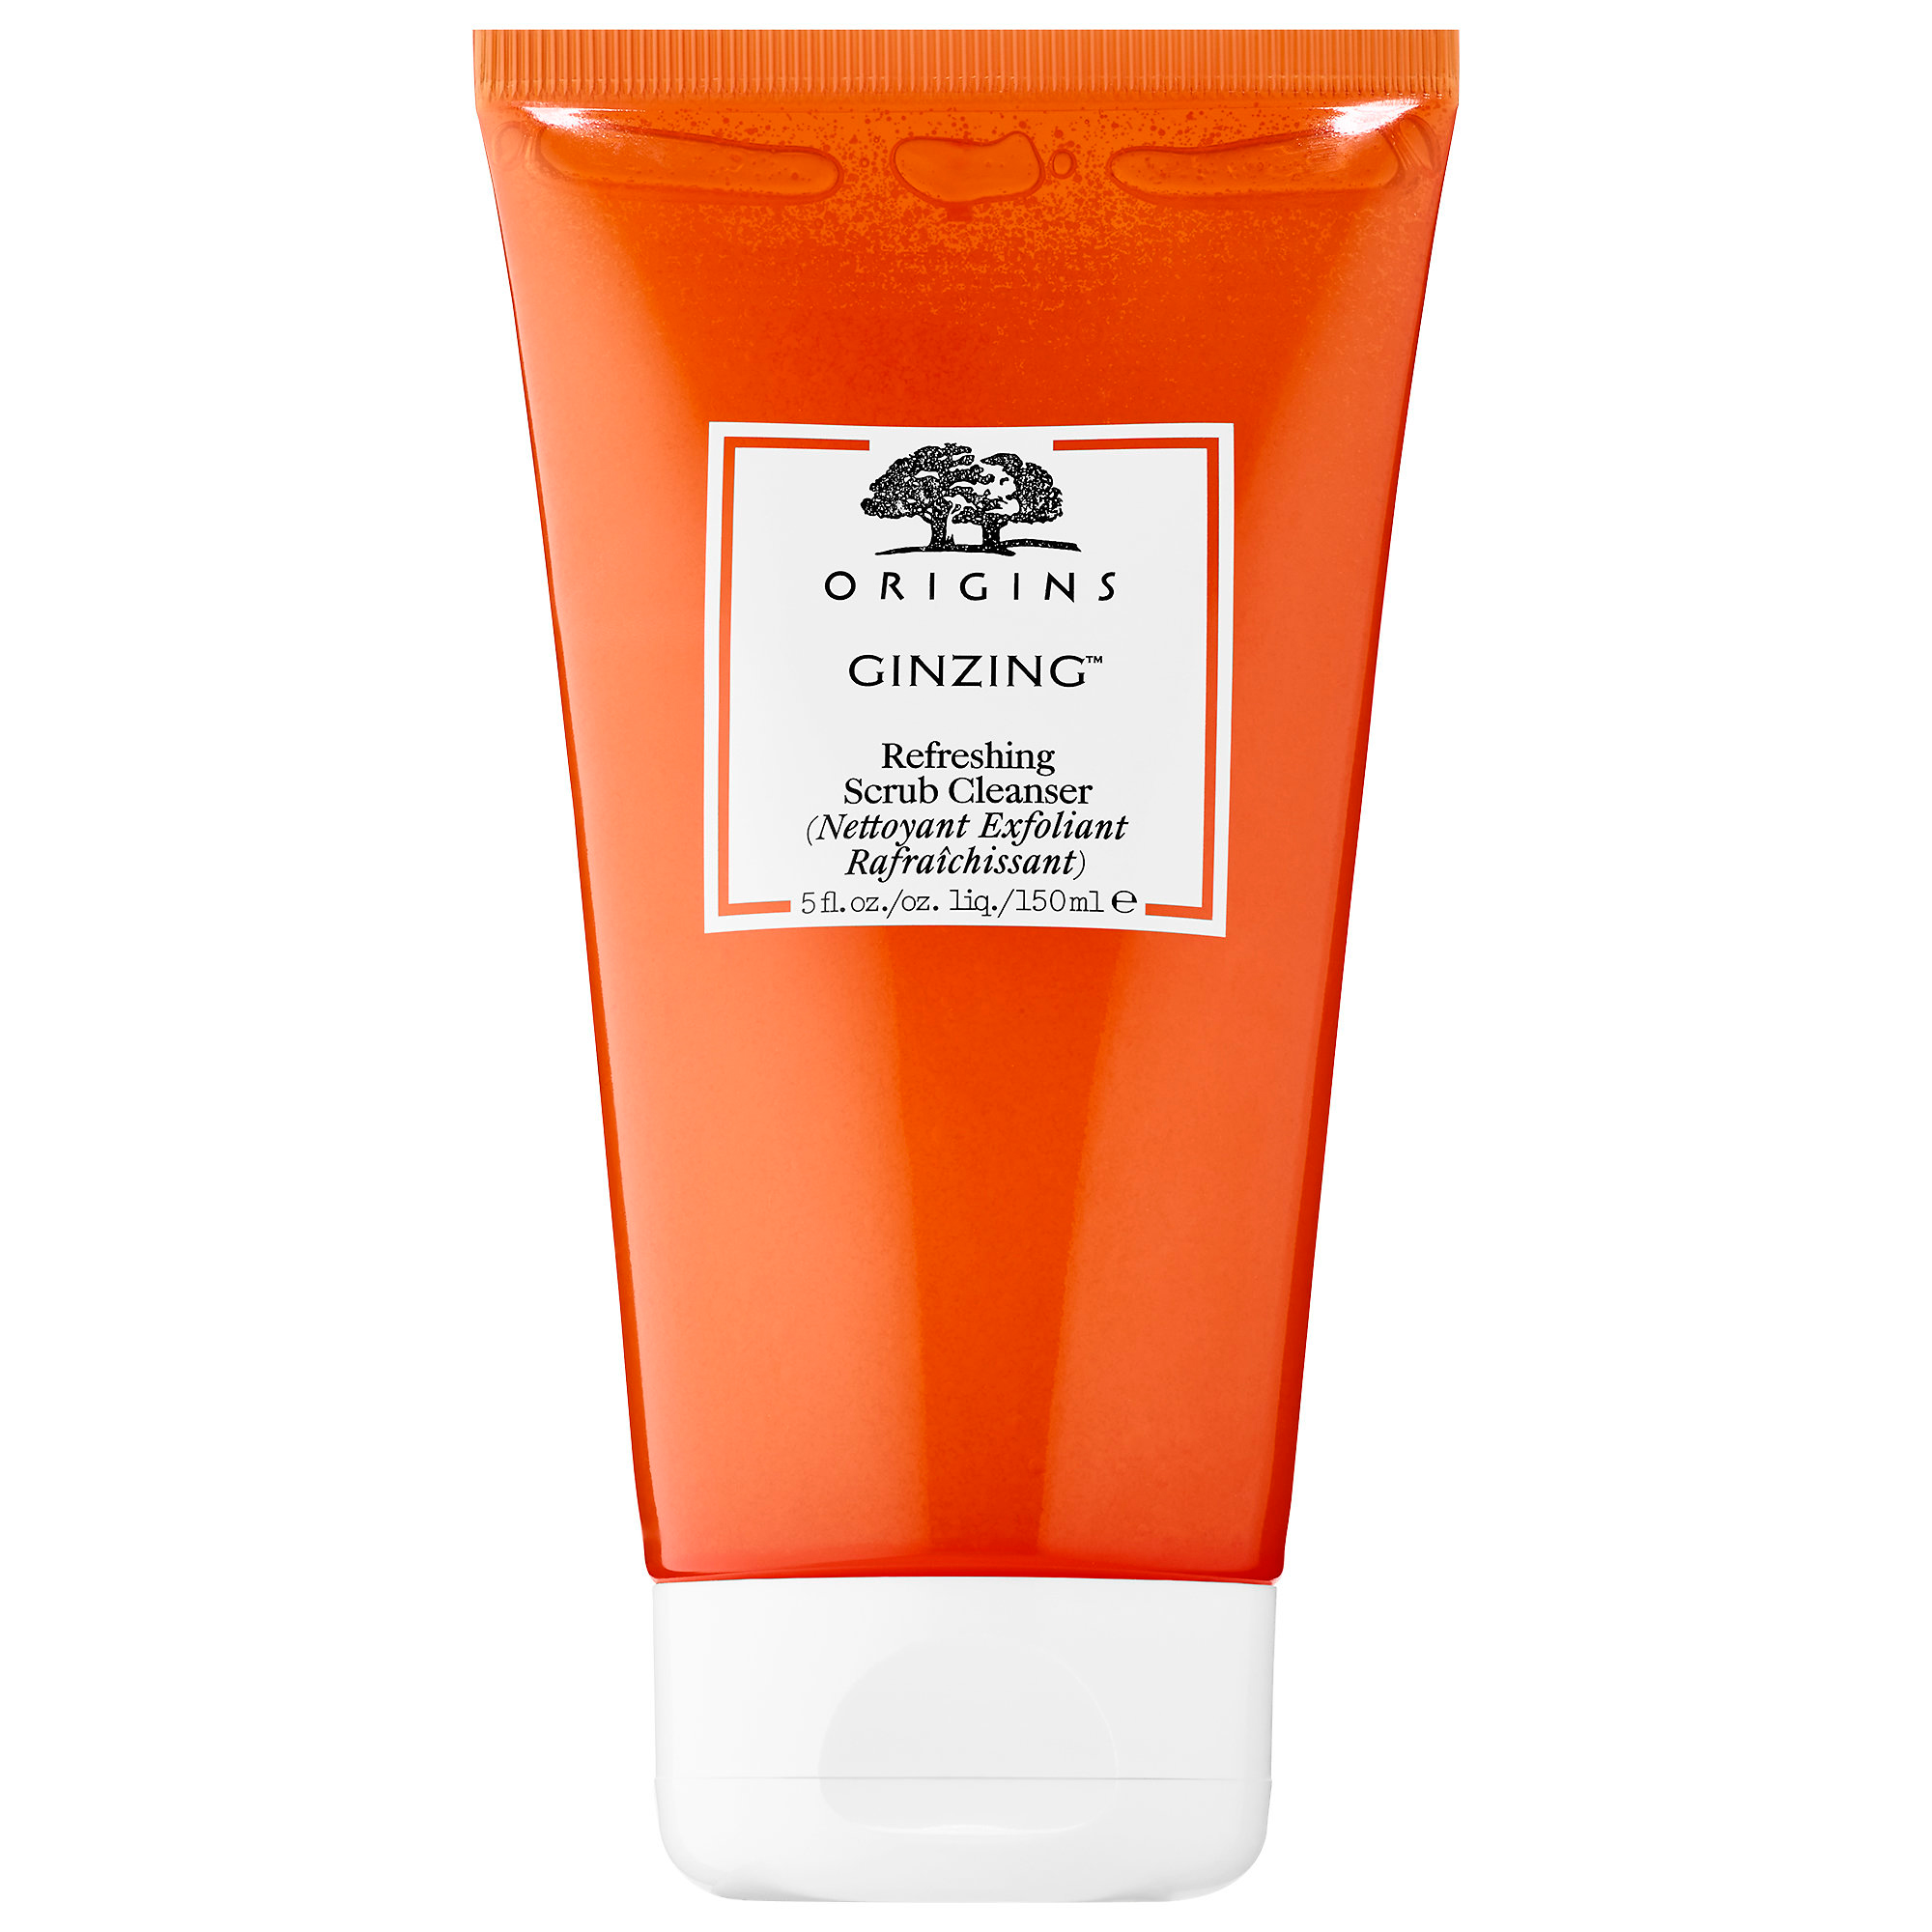 Best Exfoliator for Brightening: ORIGINS GinZing Refreshing Scrub Cleanser